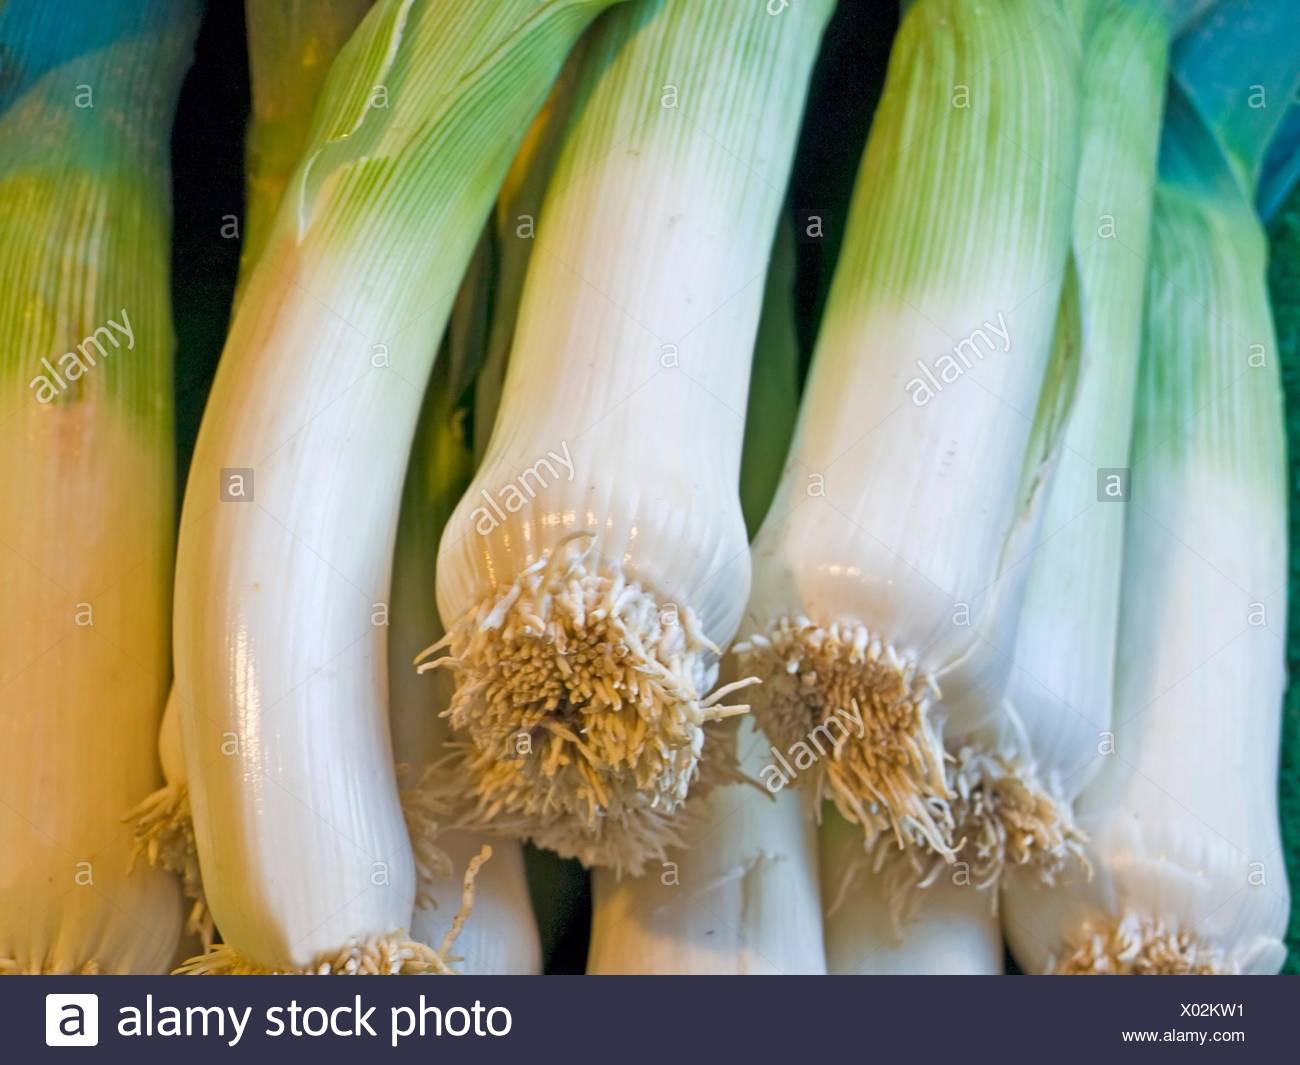 leek at a farmer market. - Stock Image